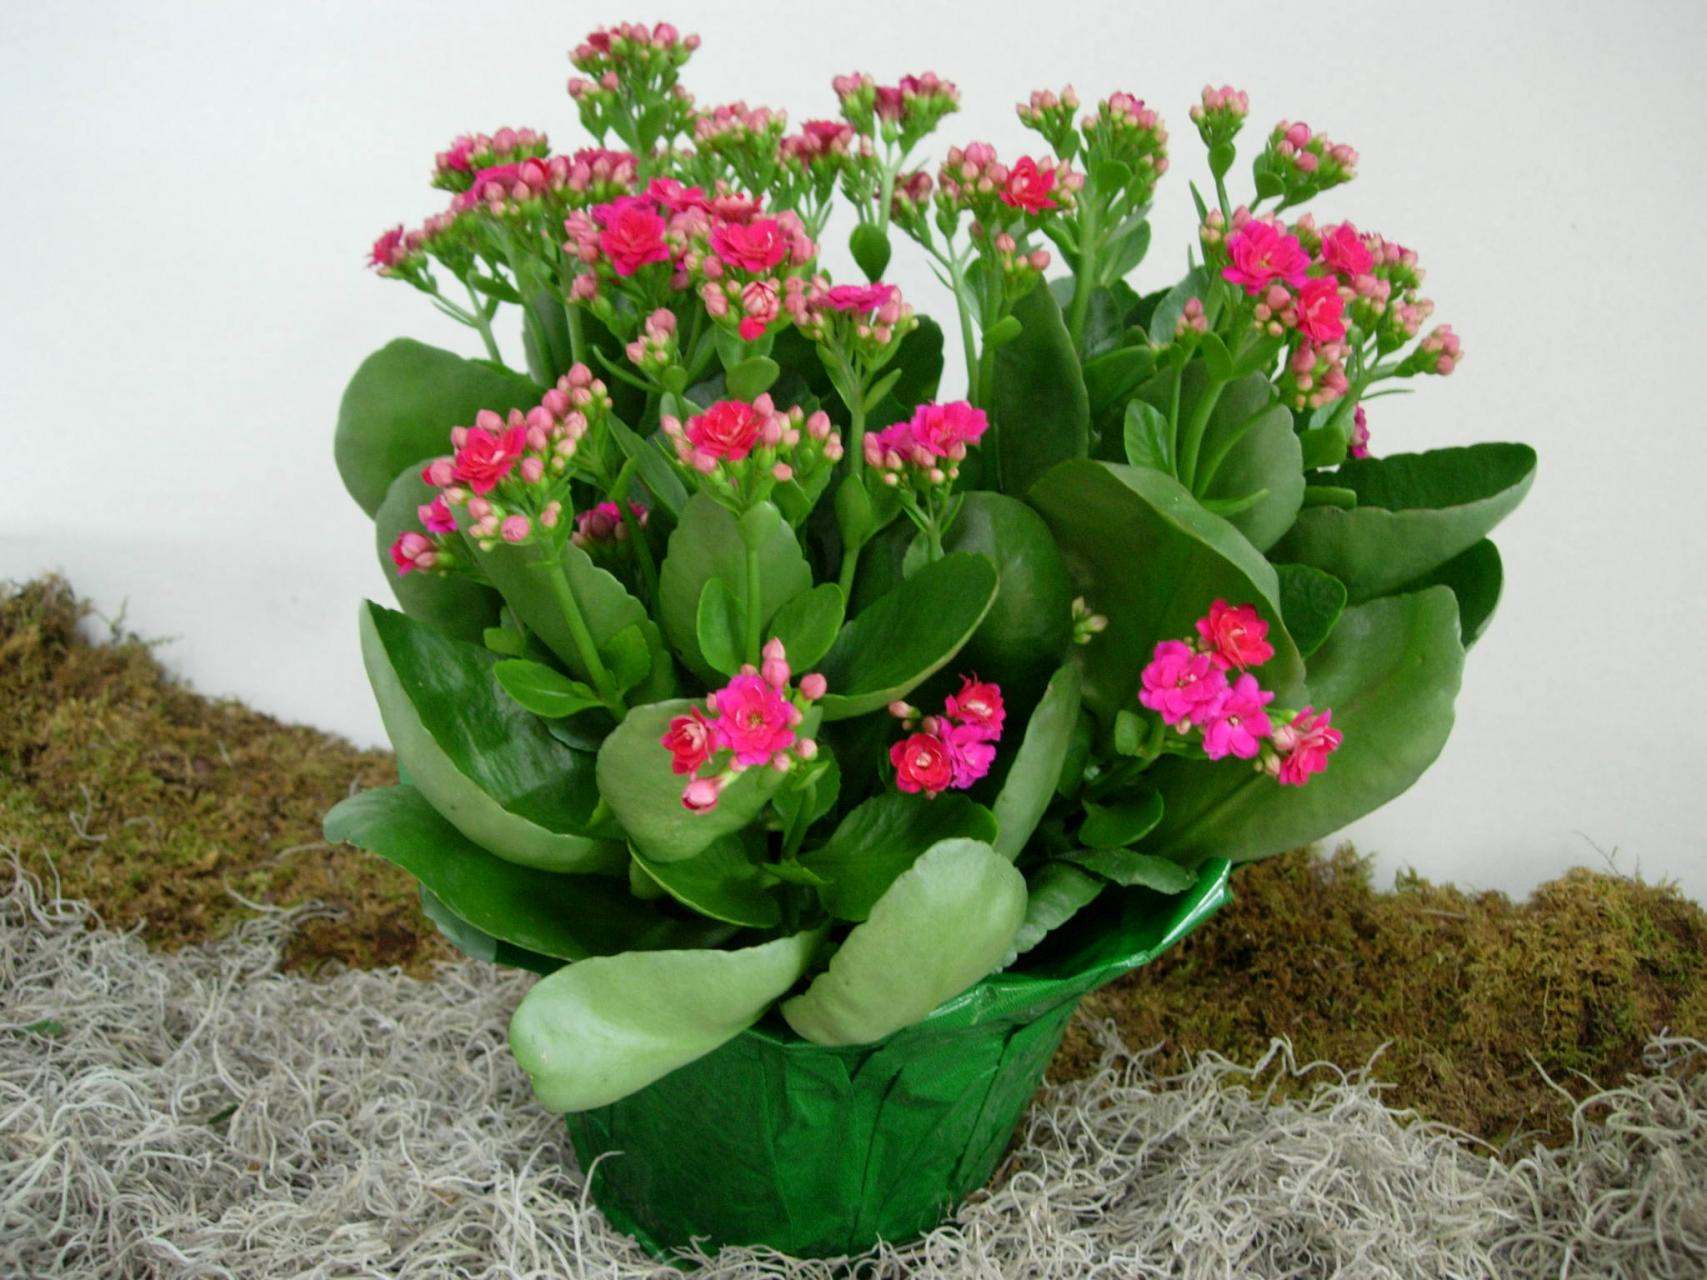 kalanchoe care tips on how to grow kalanchoe plants green fingers gfinger is the most. Black Bedroom Furniture Sets. Home Design Ideas